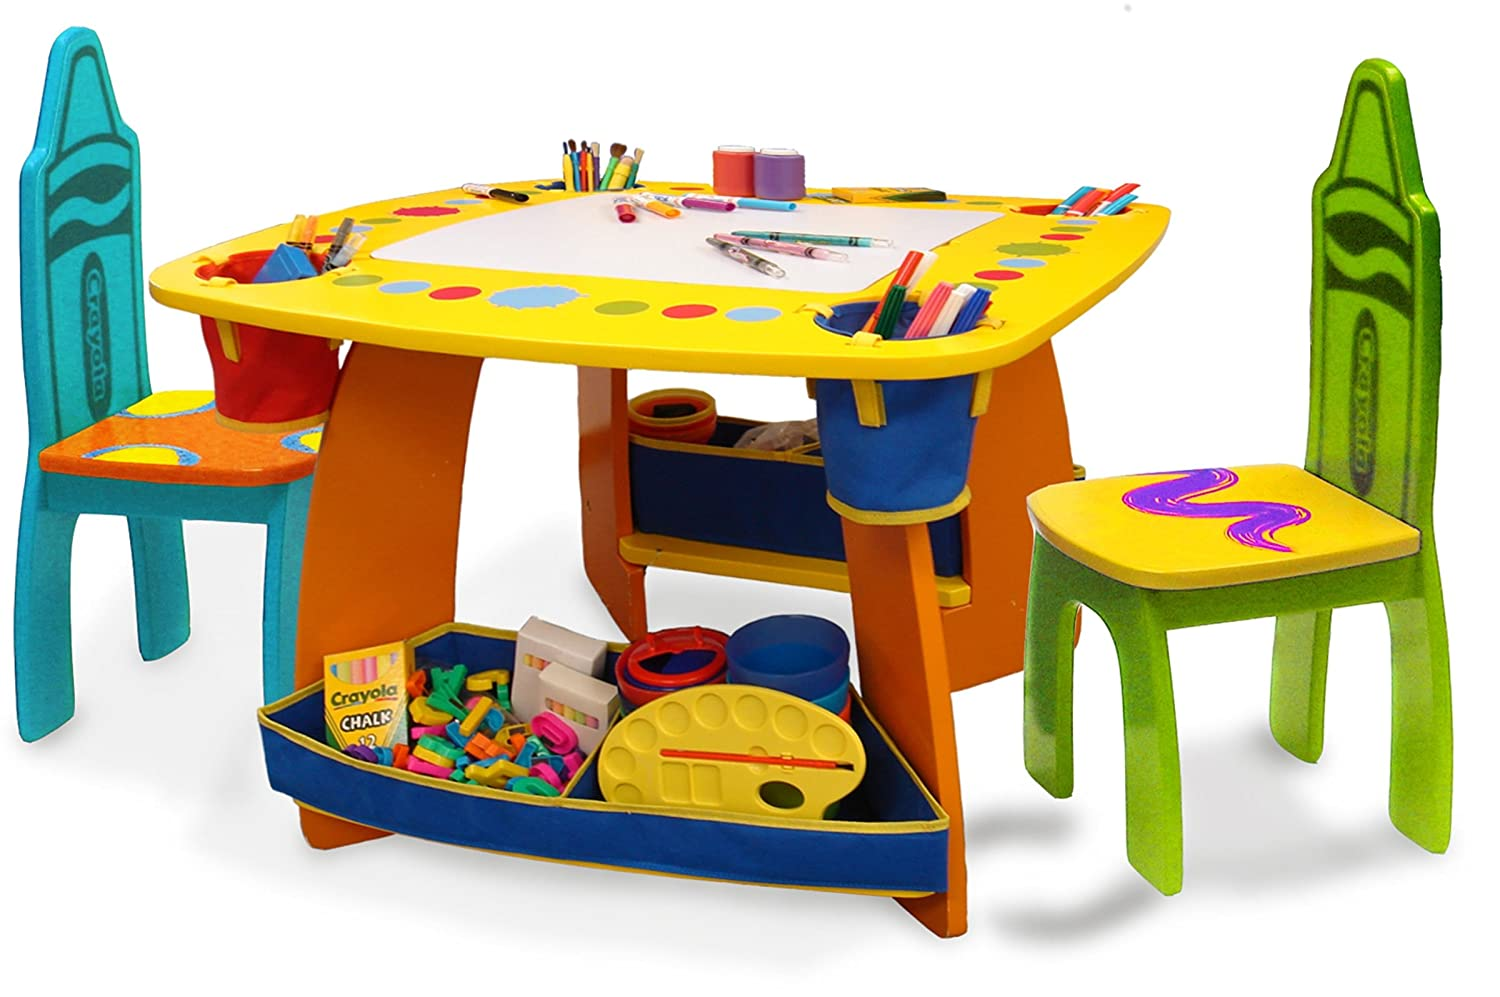 Table Set For Kids Amazoncom Crayola Wooden Table And Chair Set Toys Games